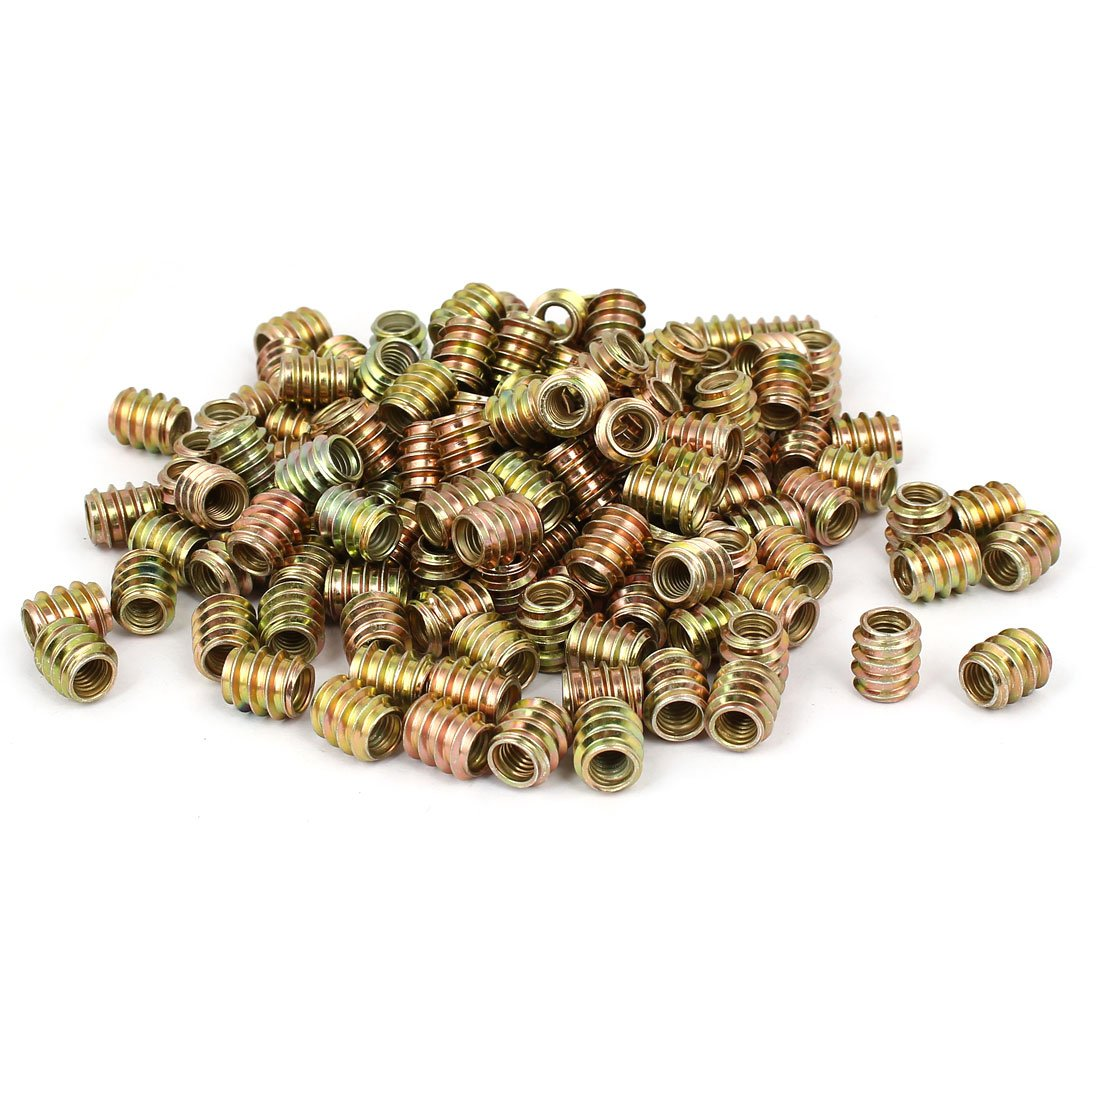 uxcell Wood Furniture M6 x 12mm Insert Fixing Screw E-Nut Bronze Tone 200pcs by uxcell